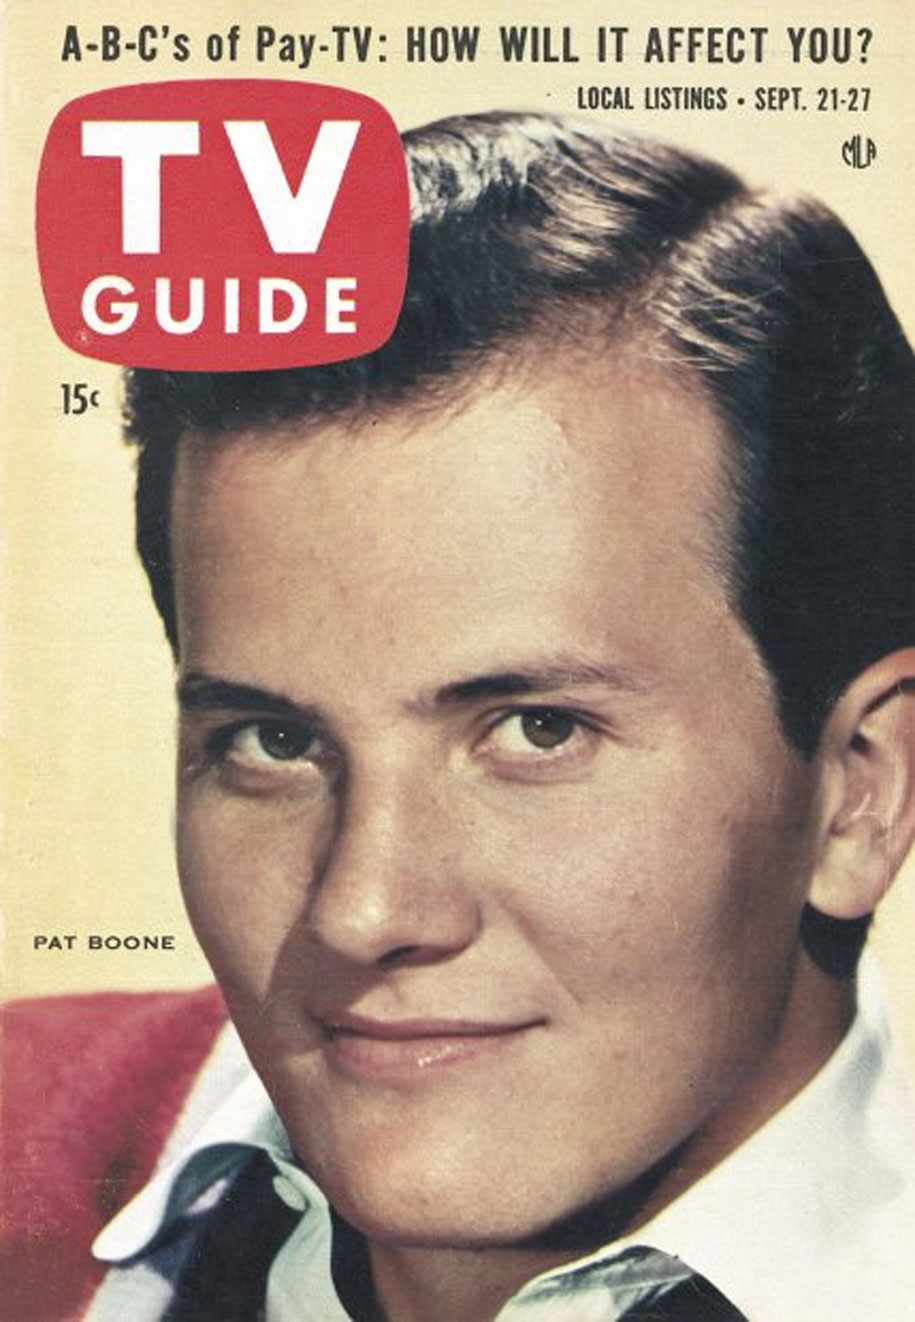 TV Guide September 21 1957 Lake Ontario Edition Front Cover